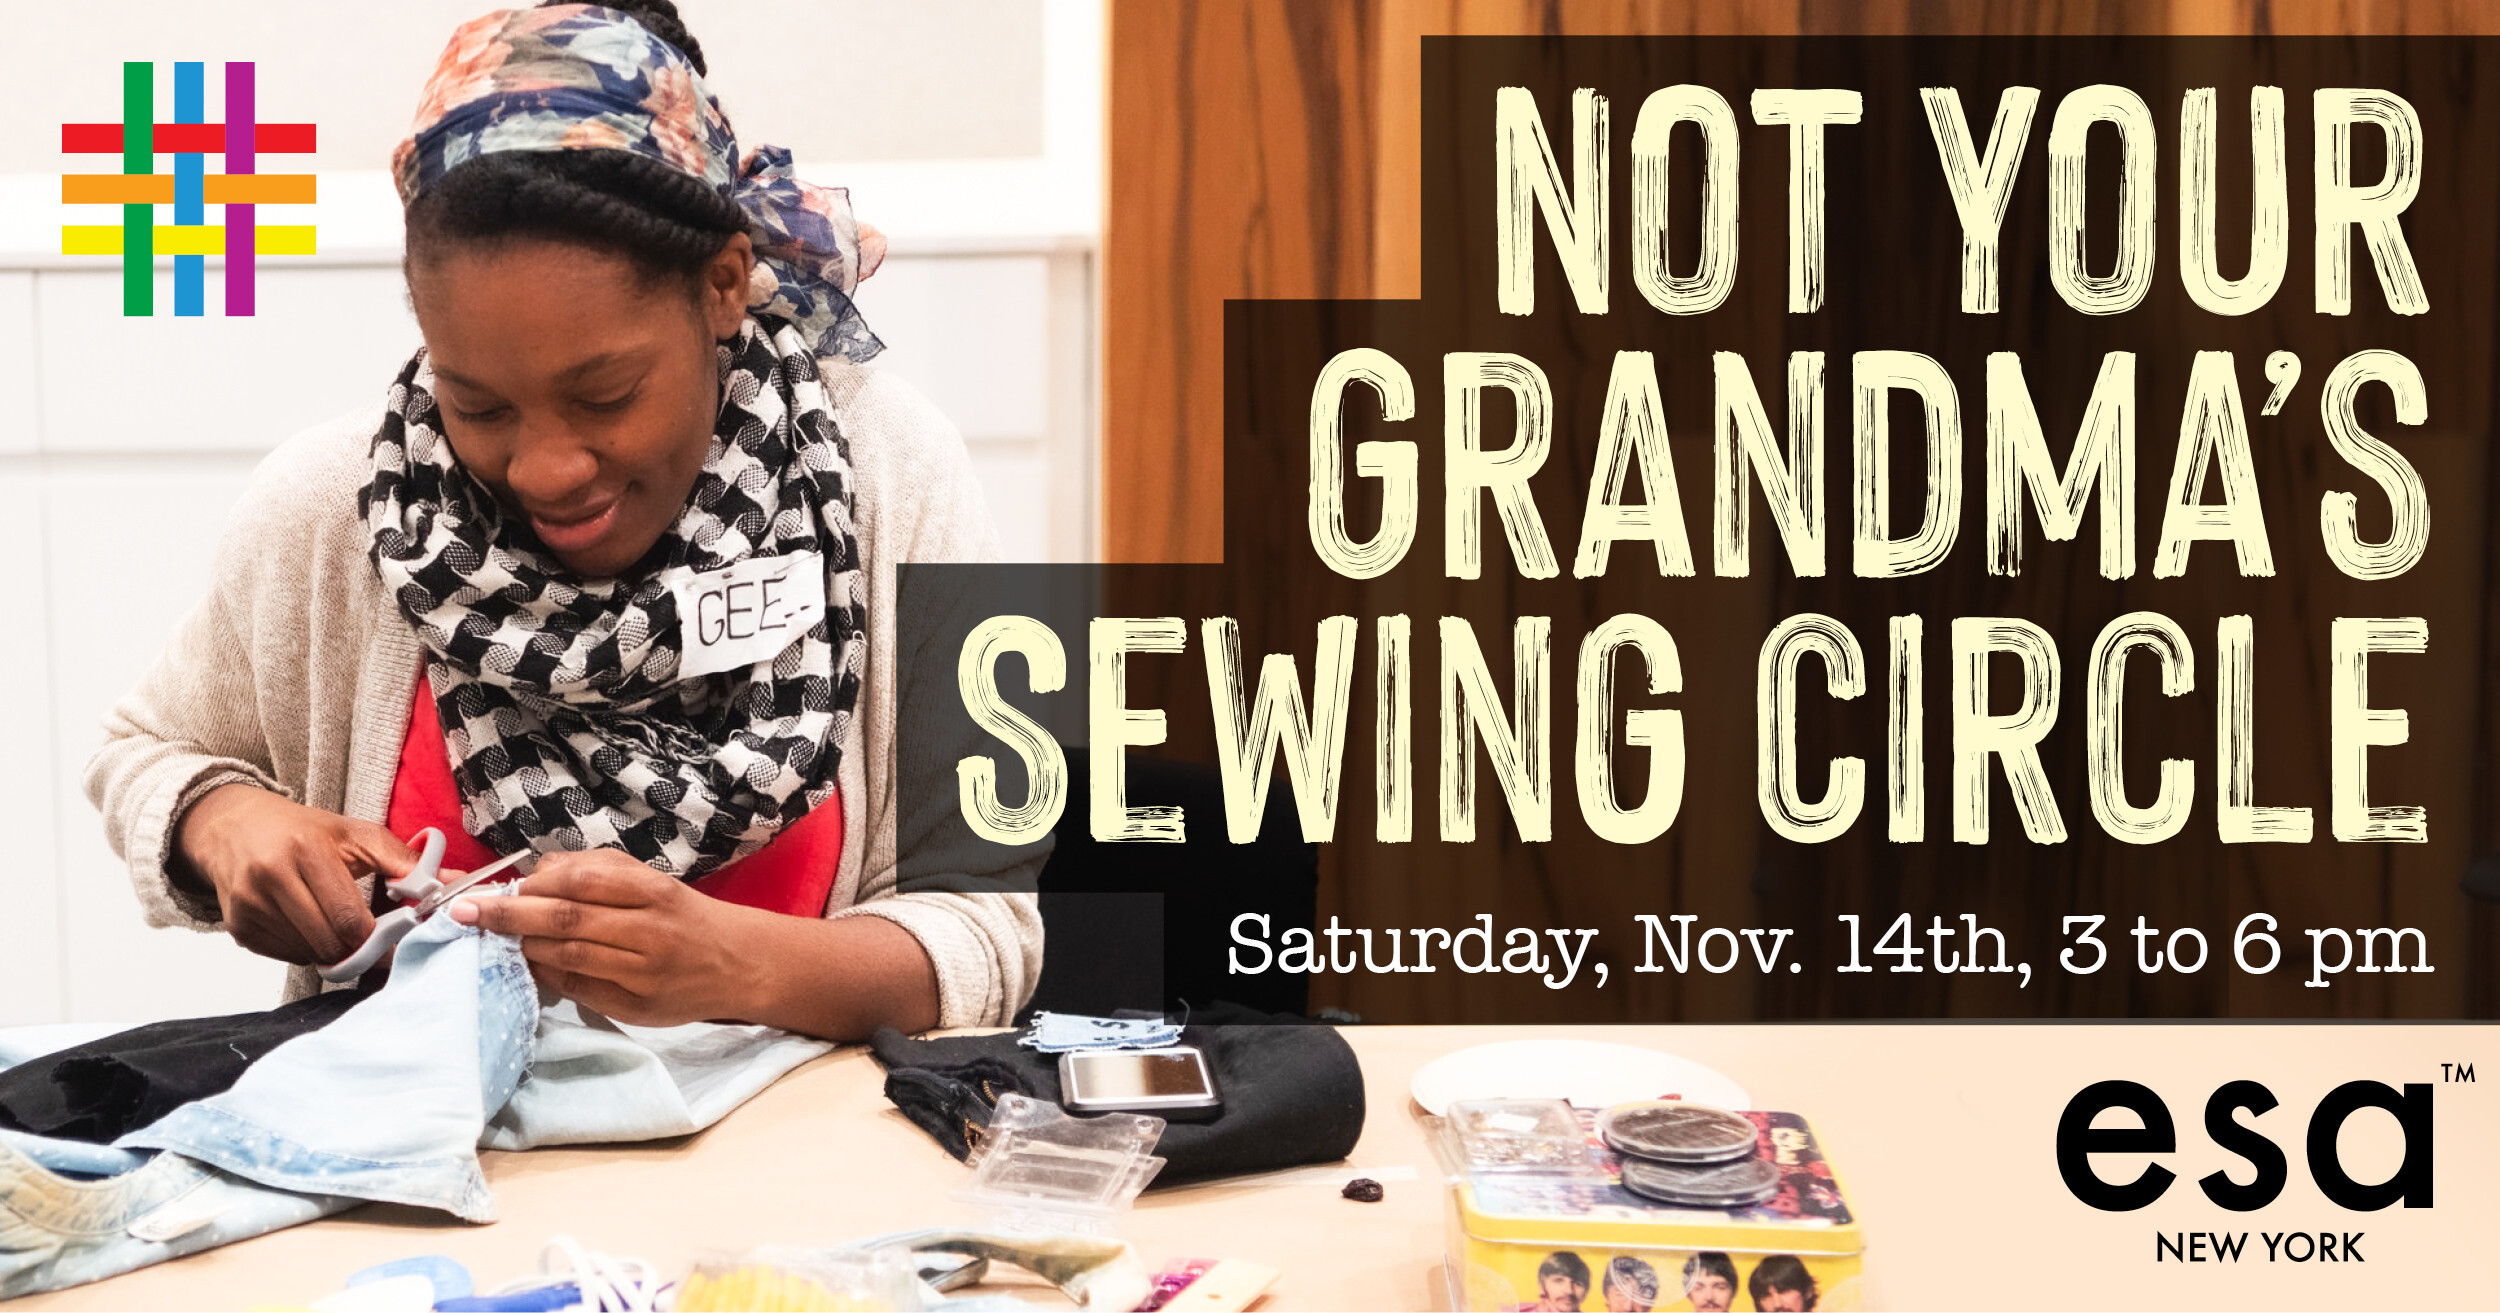 Not Your Grandma's Sewing Circle